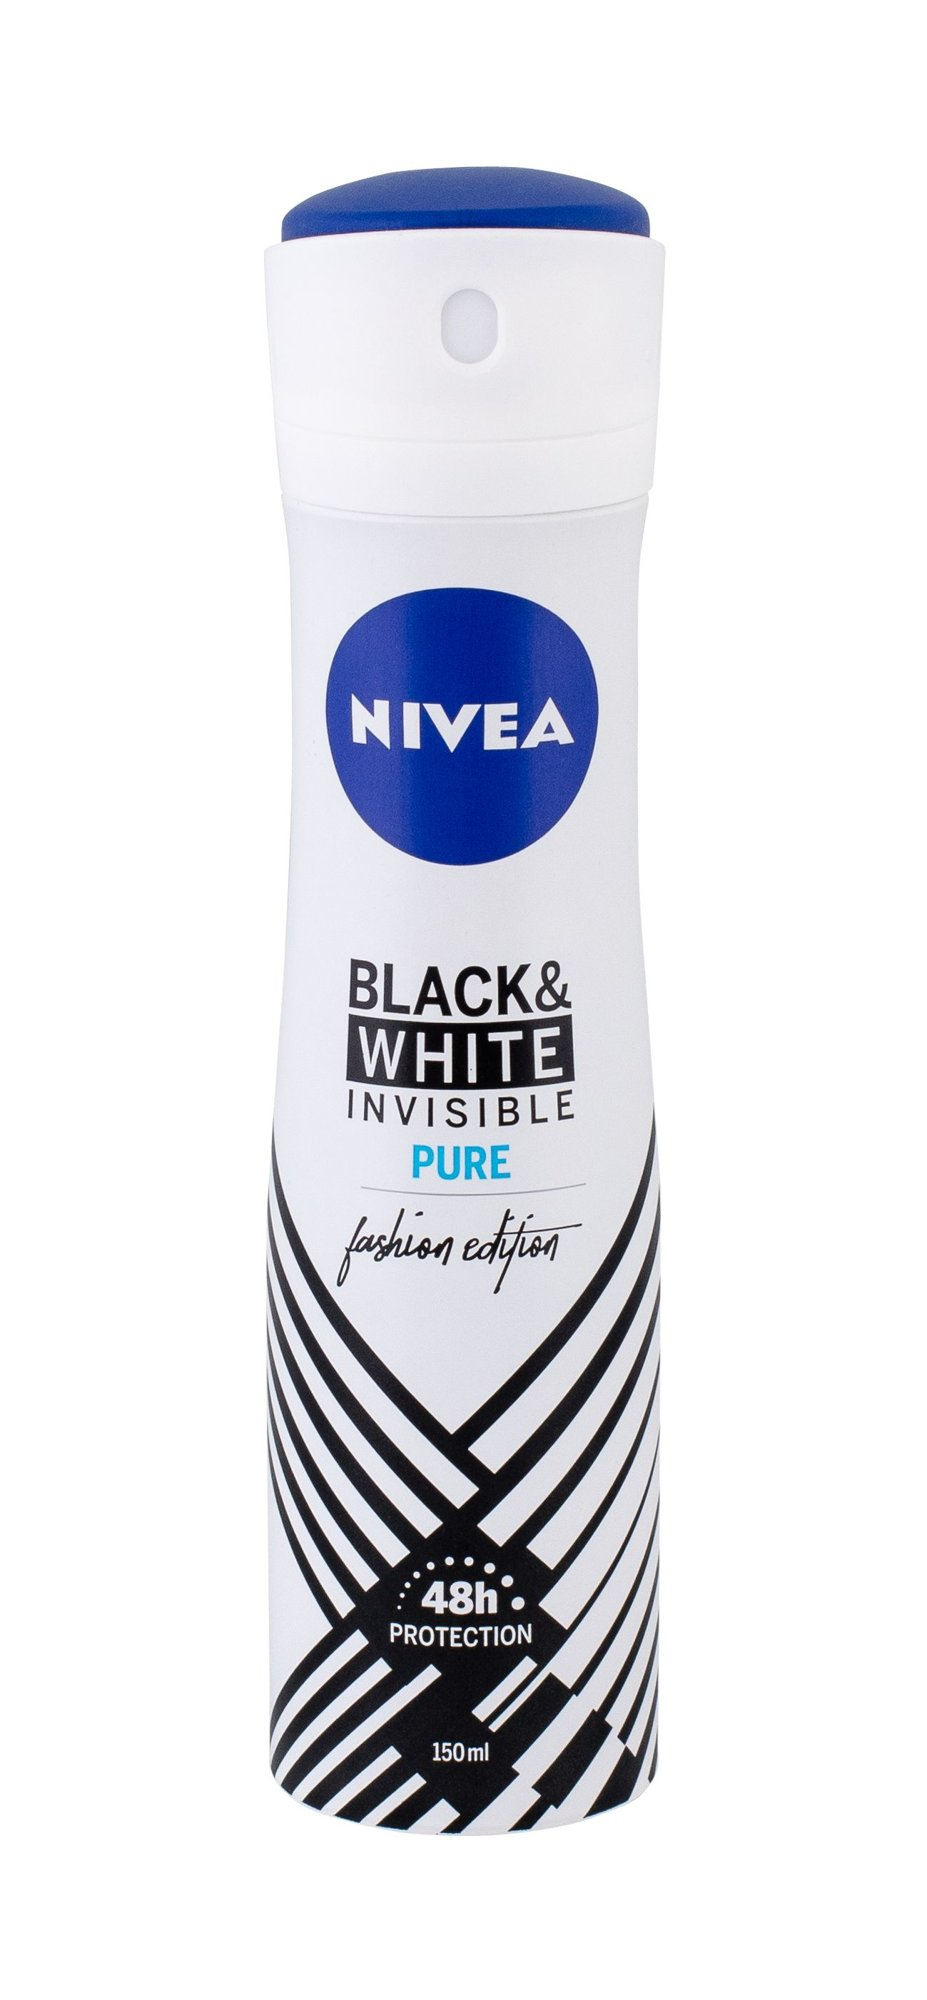 Nivea Invisible For Black & White 48h Antiperspirant, W, 150 ml